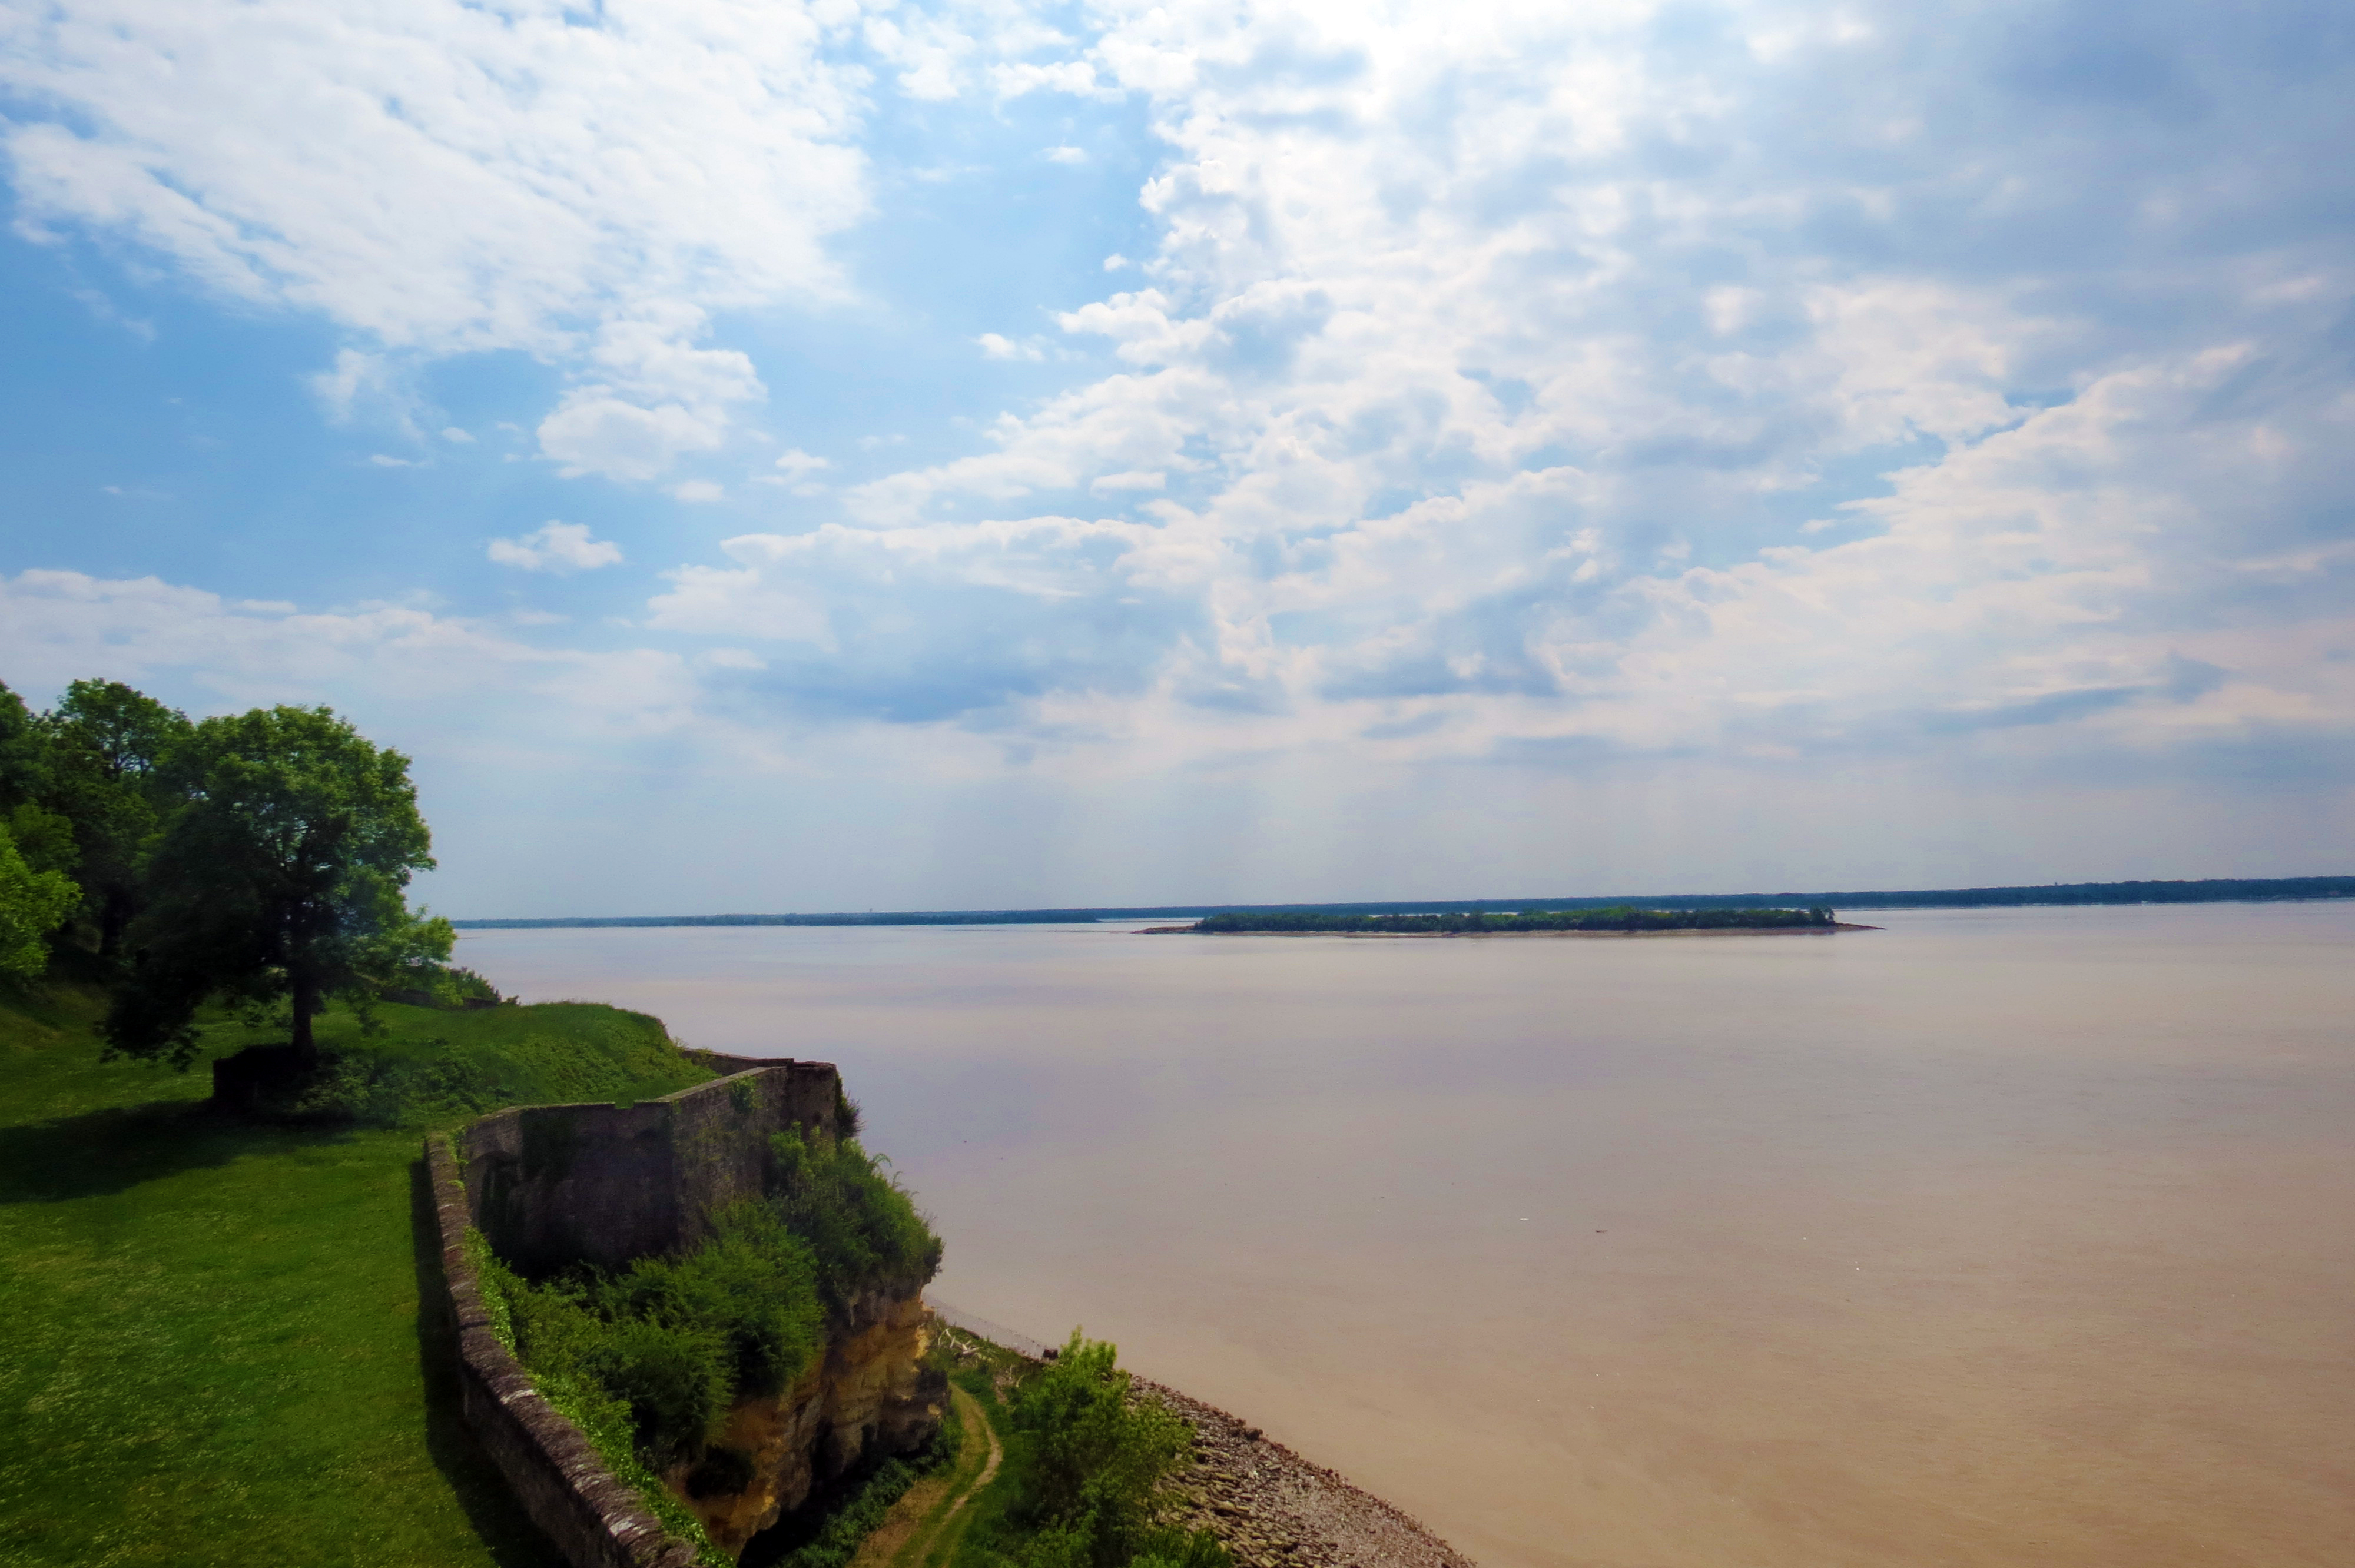 A view from the Citadel of Blaye